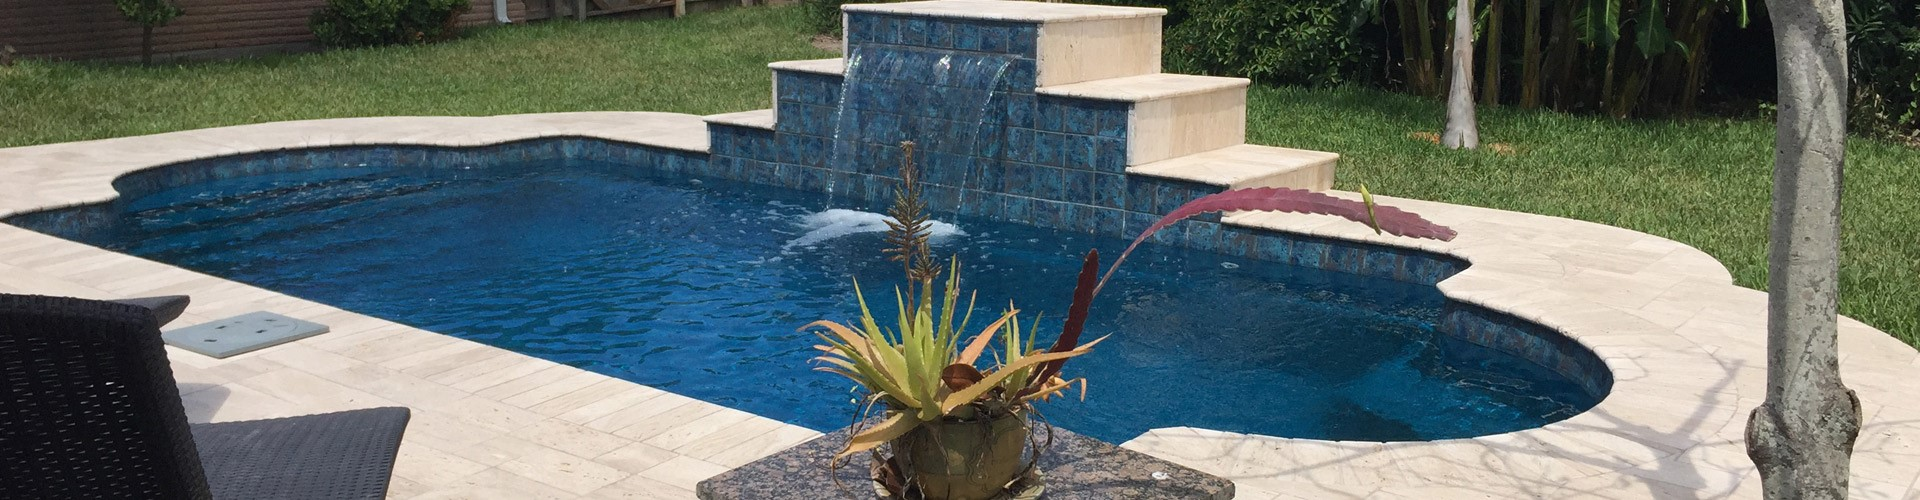 swimming-pools-fiberglass